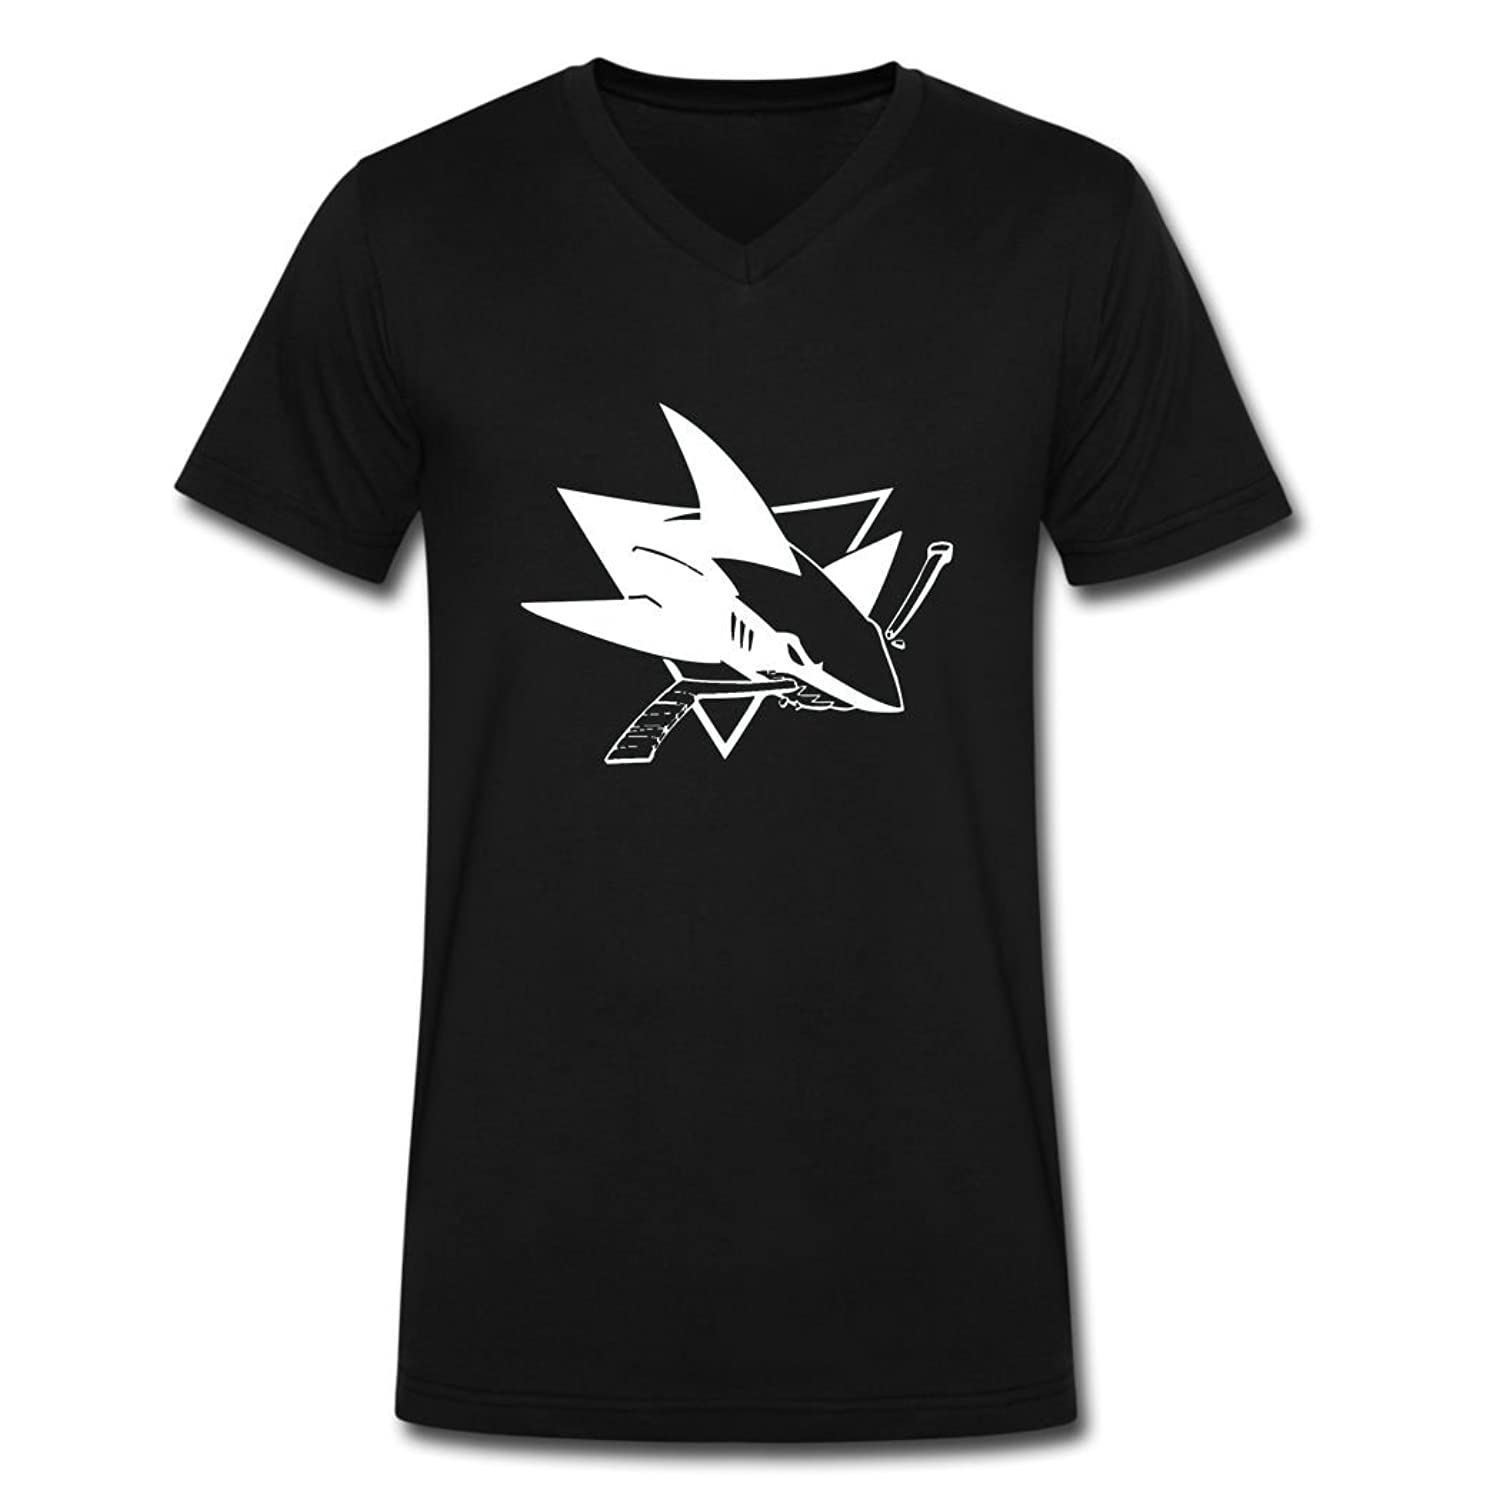 DIAOSI NICE 2016 San Jose Sharks tee shirt for men hoodieBlack XXL